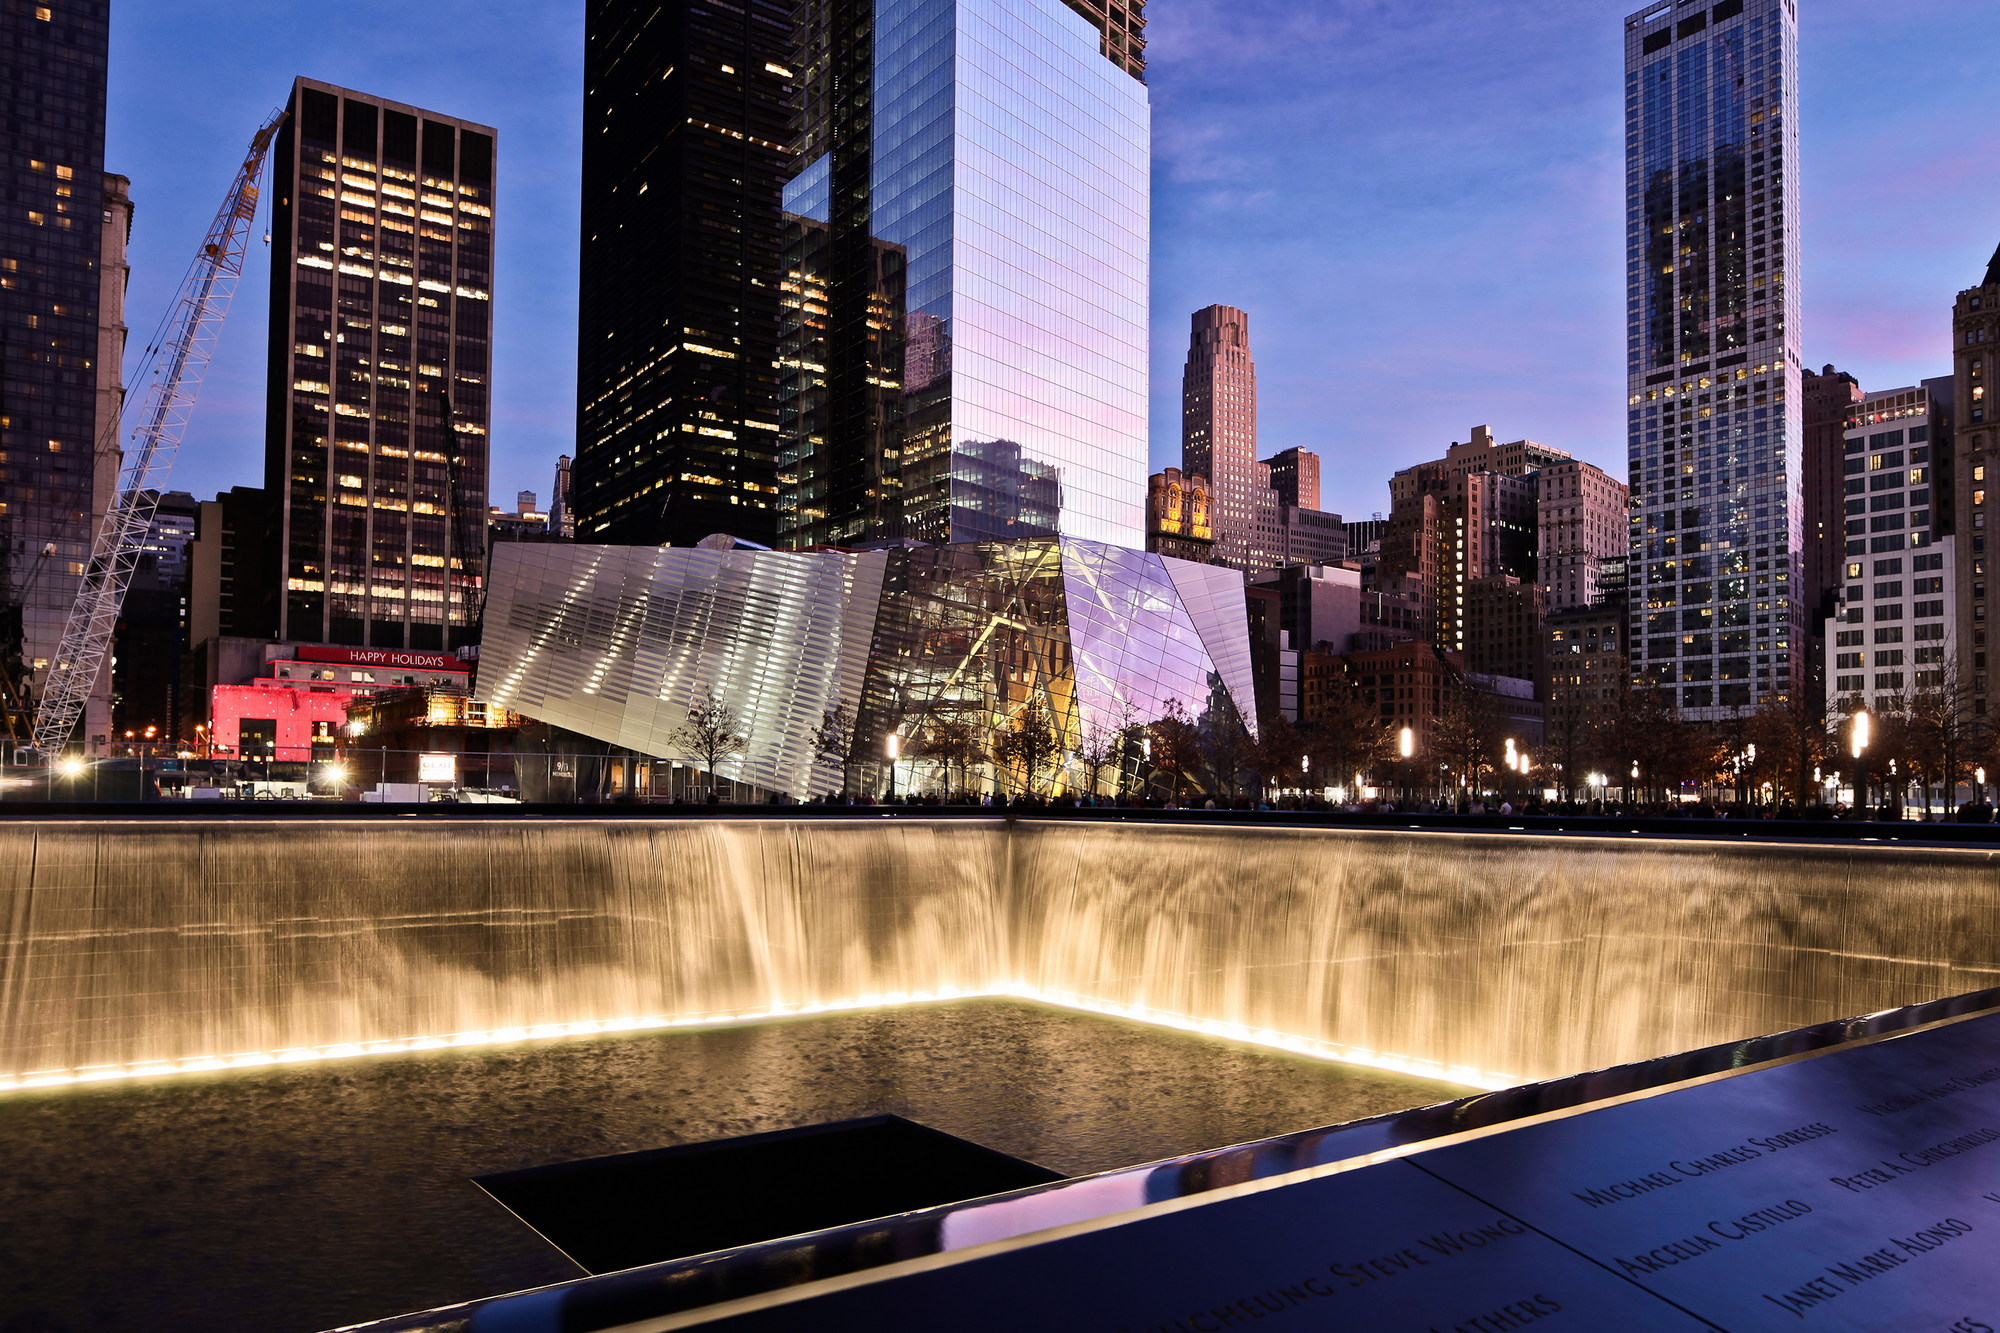 Invisible Cities and the Curtain Wall: The Last Remnant of Modernism, The National September 11 Memorial entry pavilion appears camouflaged against the backdrop of neighbouring glass curtain walls. Image © Joe Woolhead